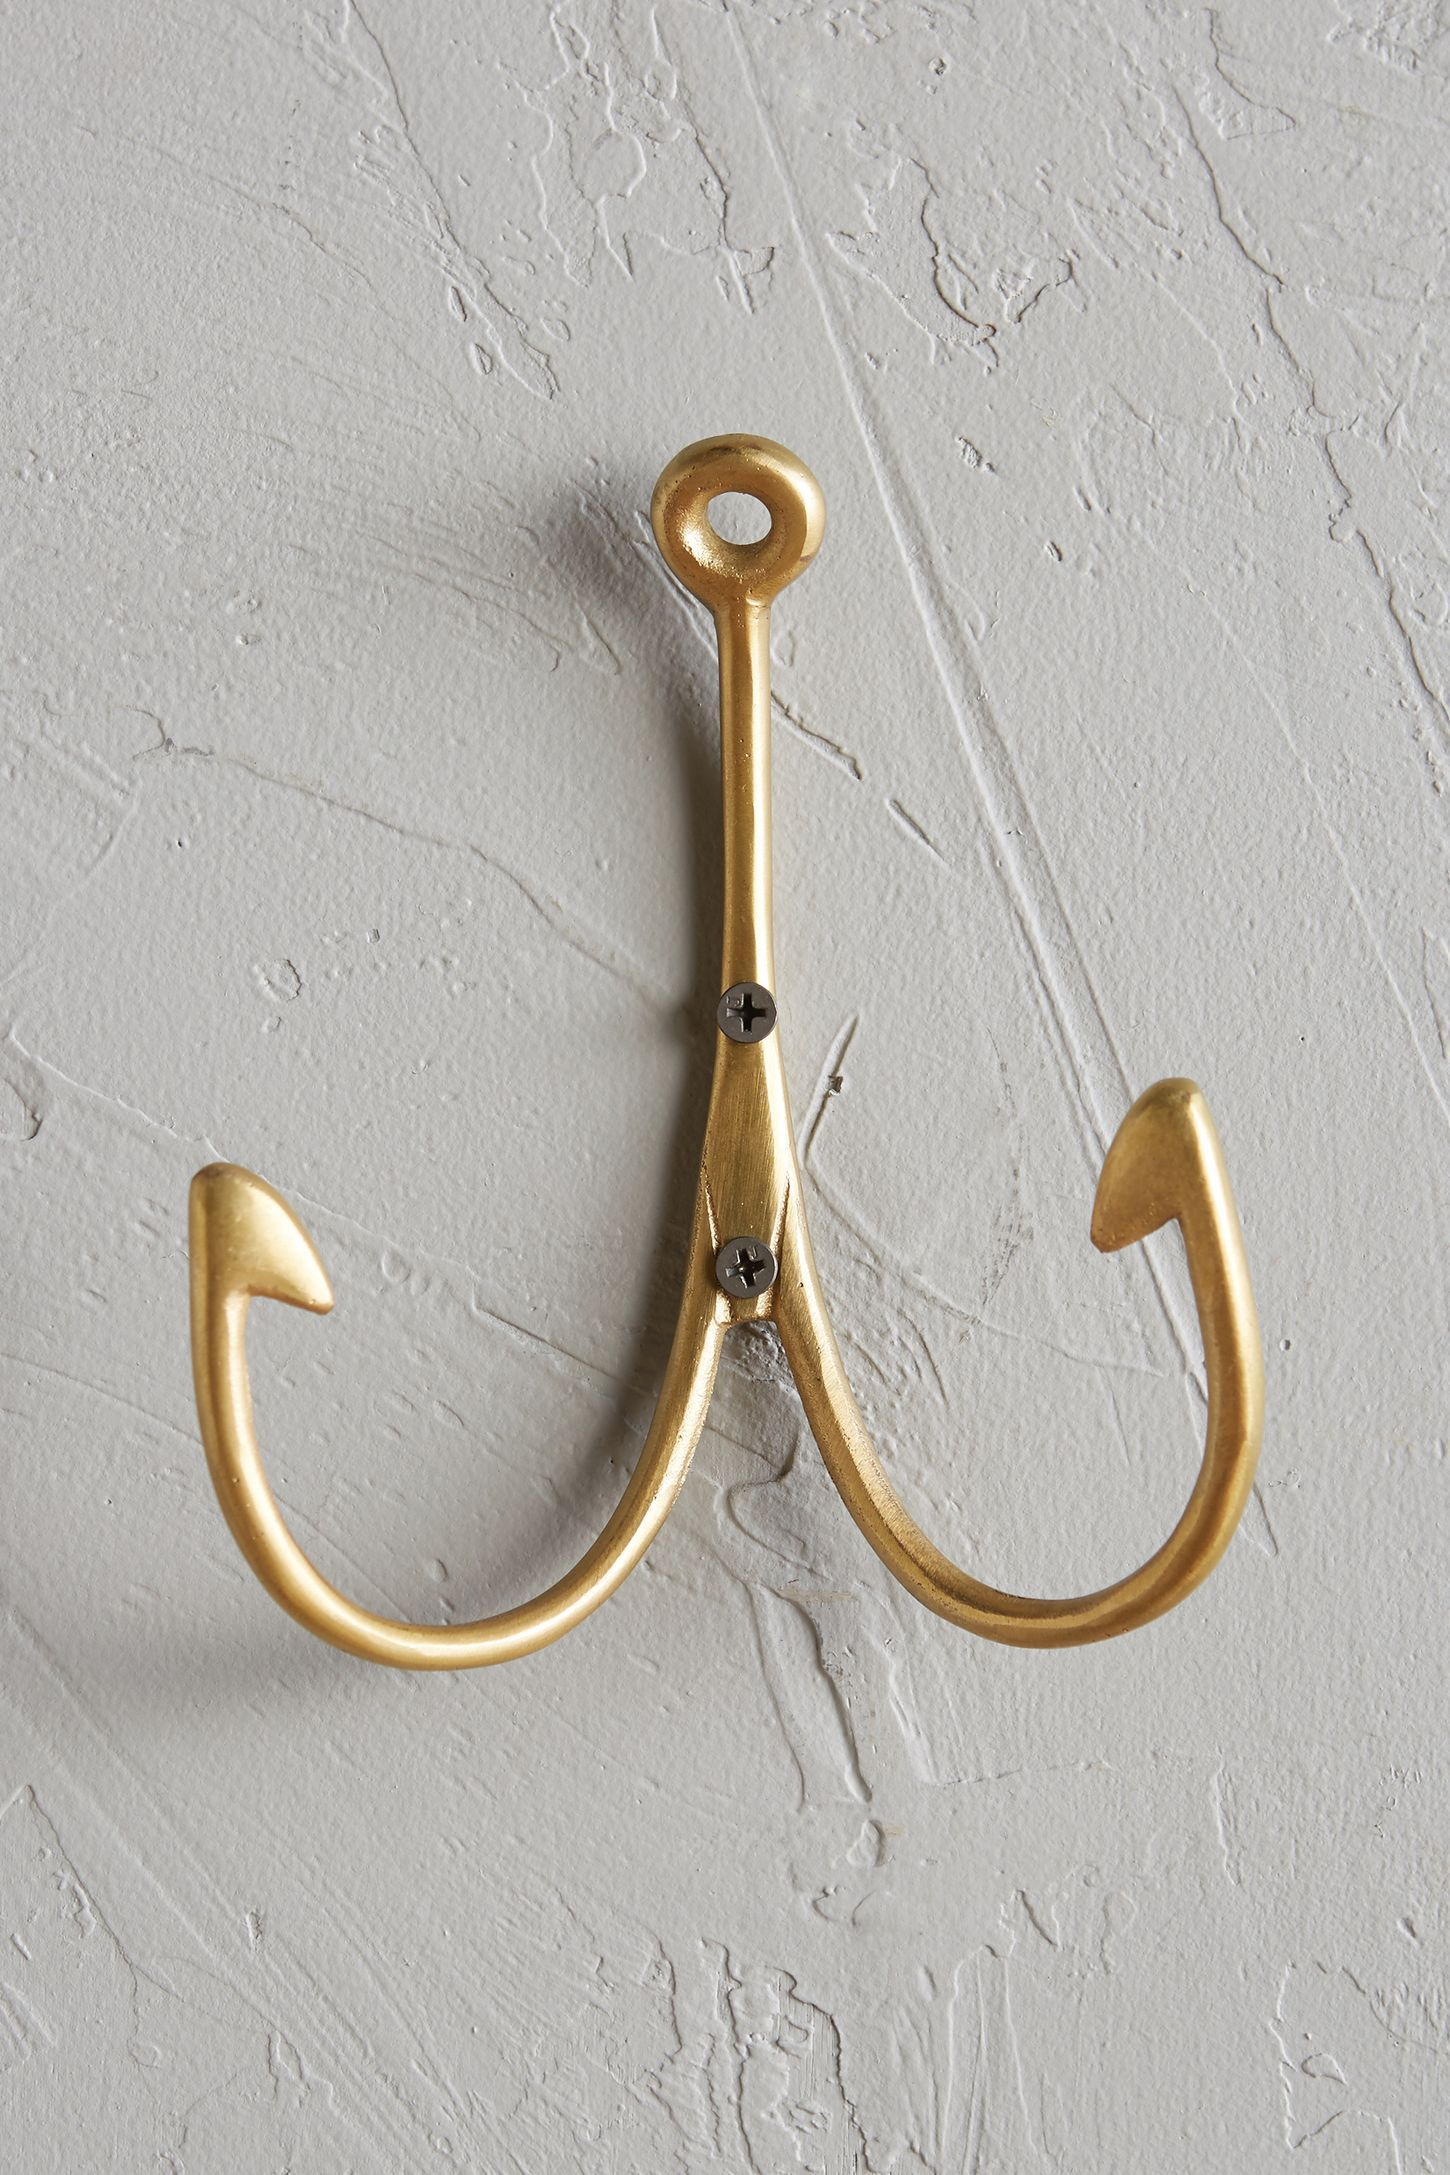 hooks hook set pin coat brass of vintage decorative decor home